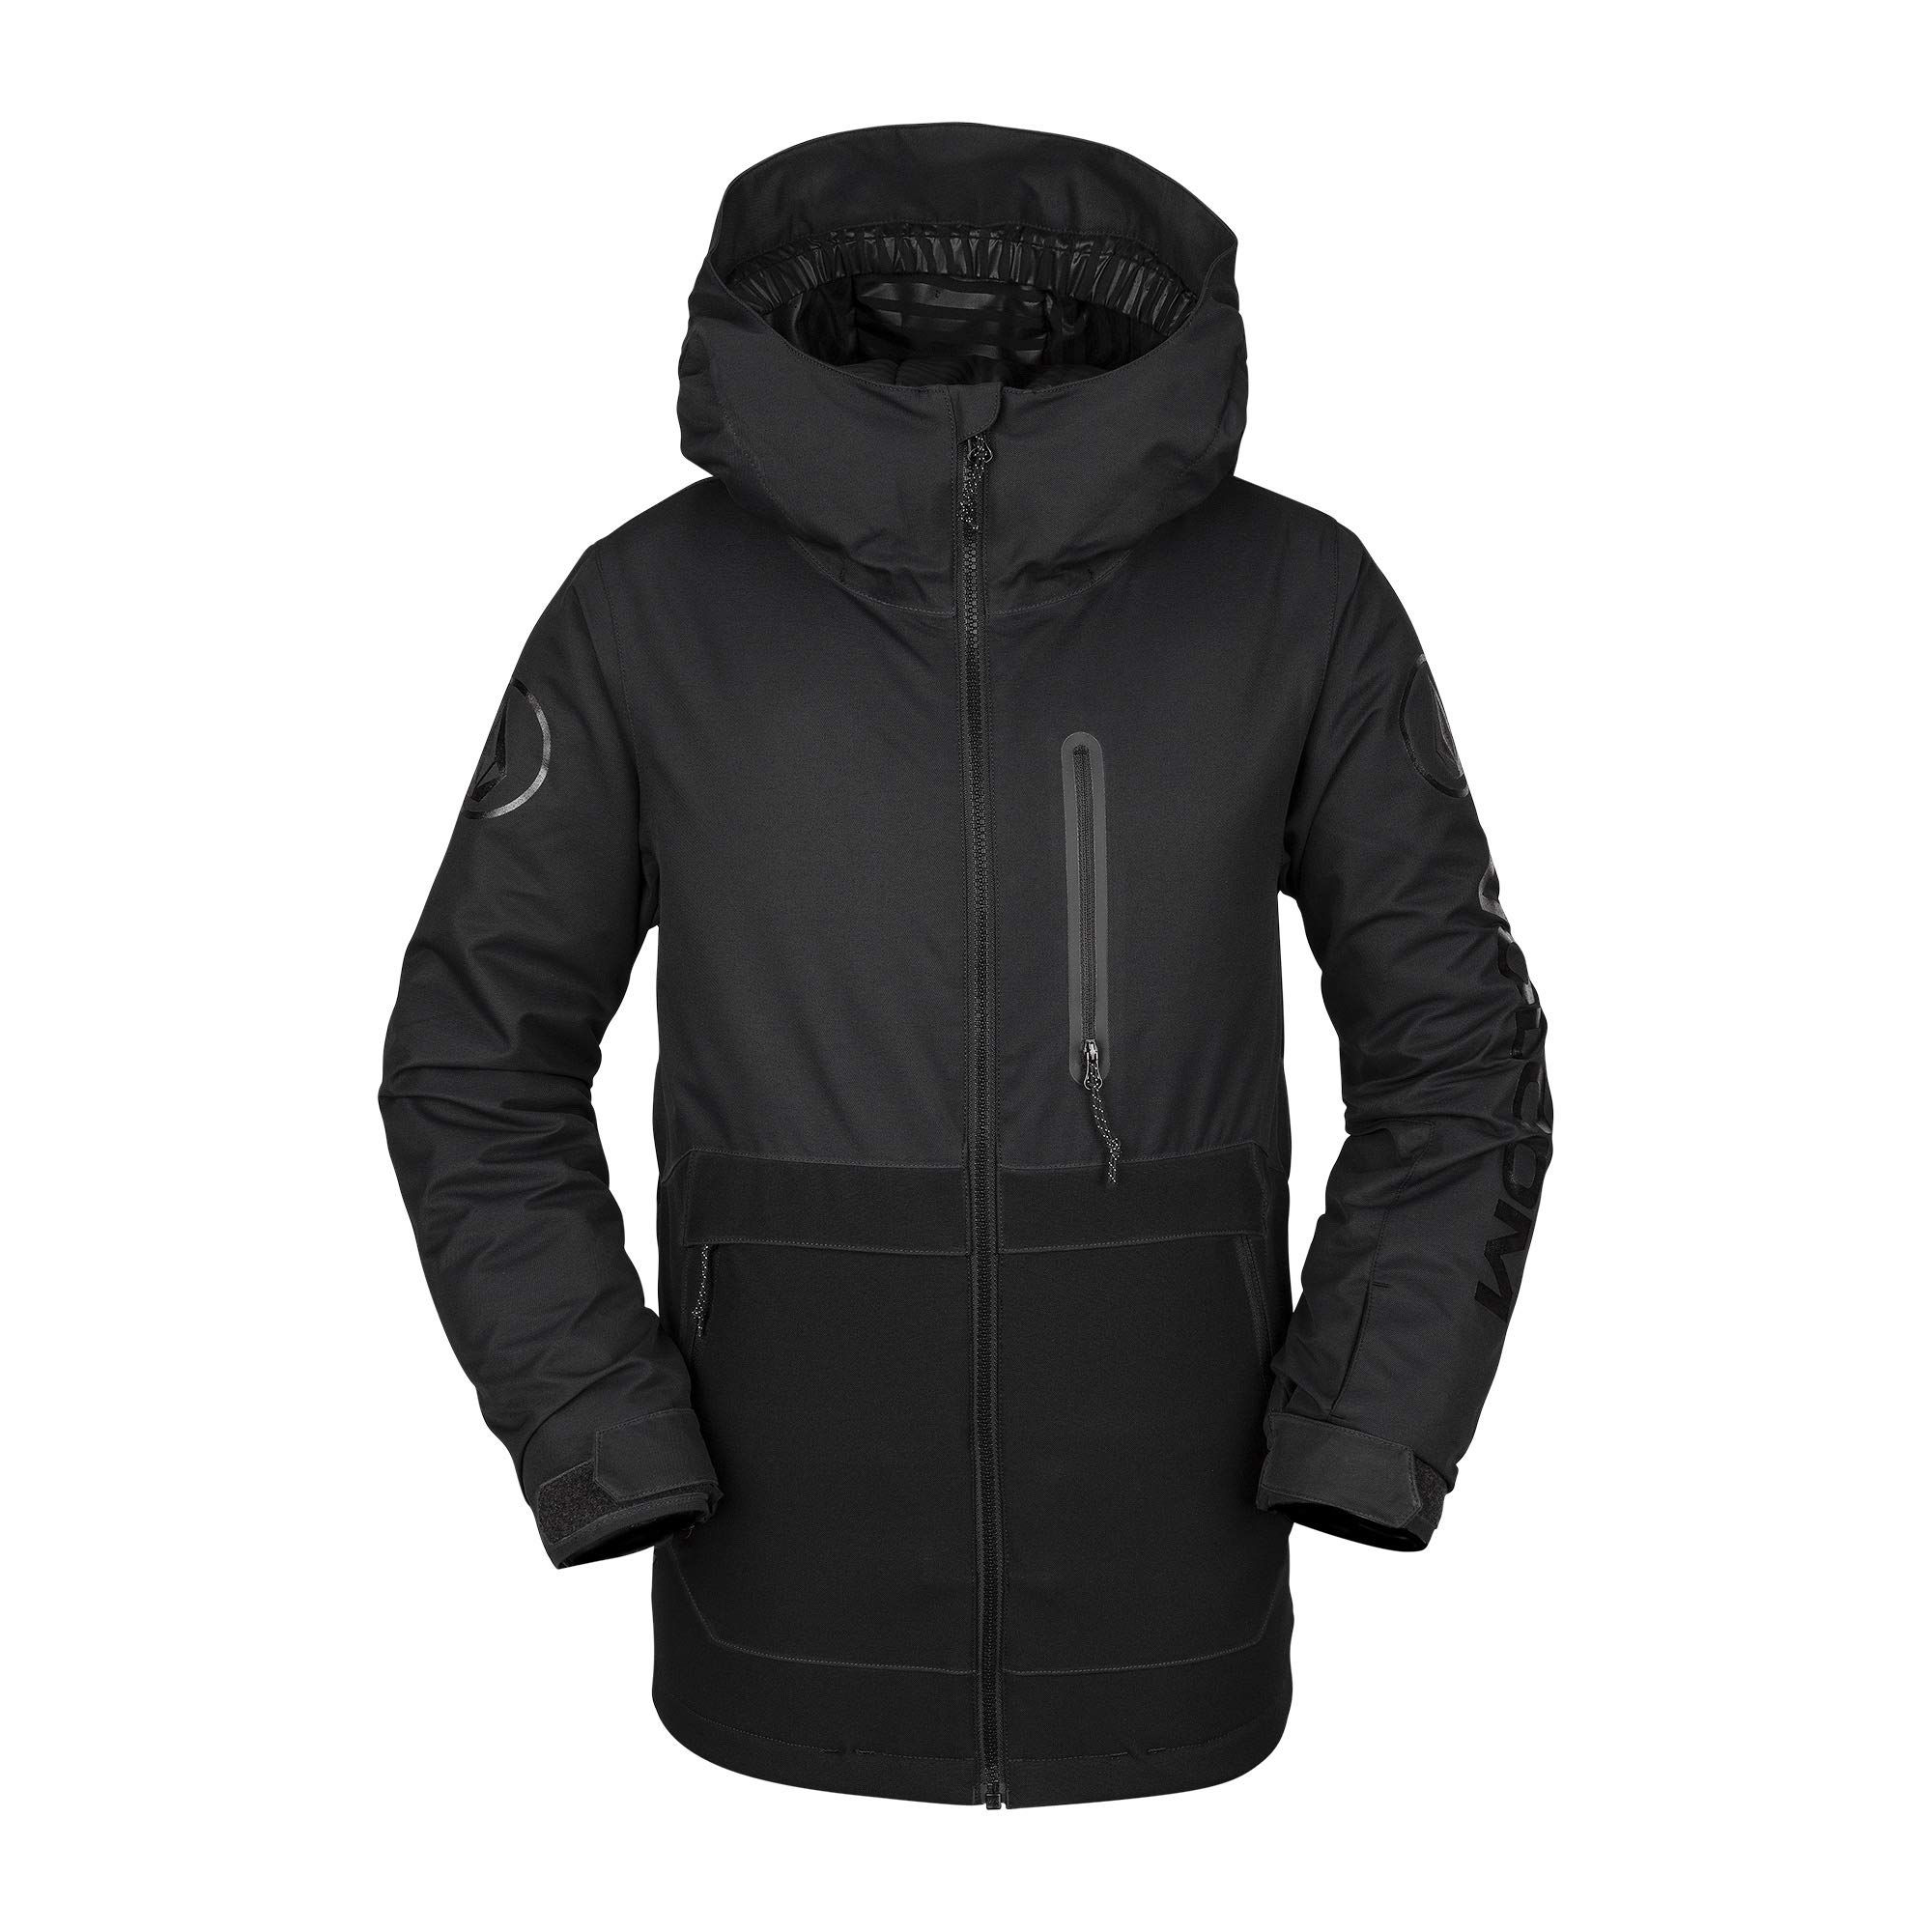 Volcom Boys' Big Holbeck Insulated 2 Layer Shell Snow Jacket, Black, Extra Large by Volcom